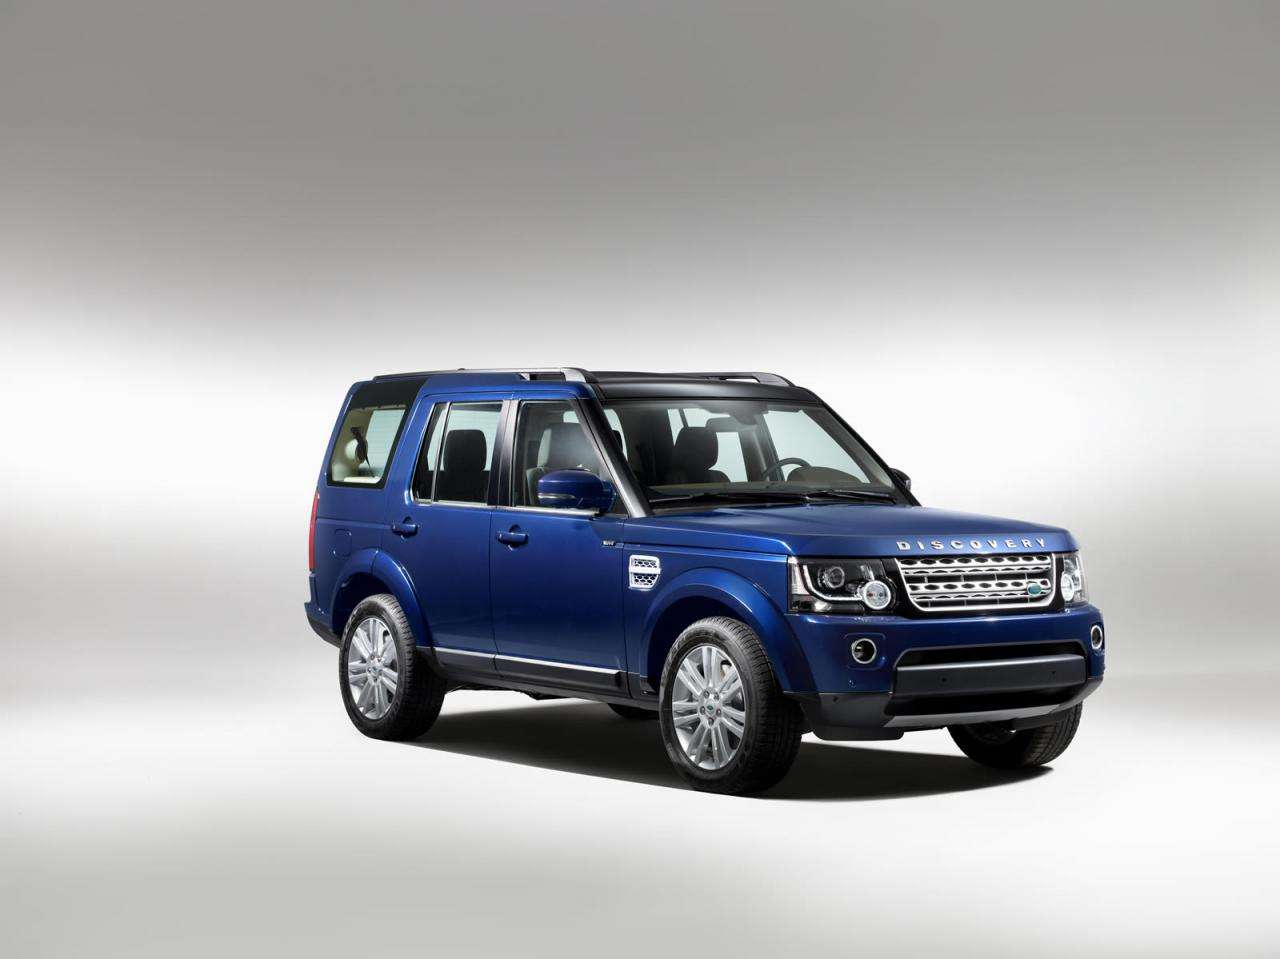 Land Rover Discovery facelift 2014